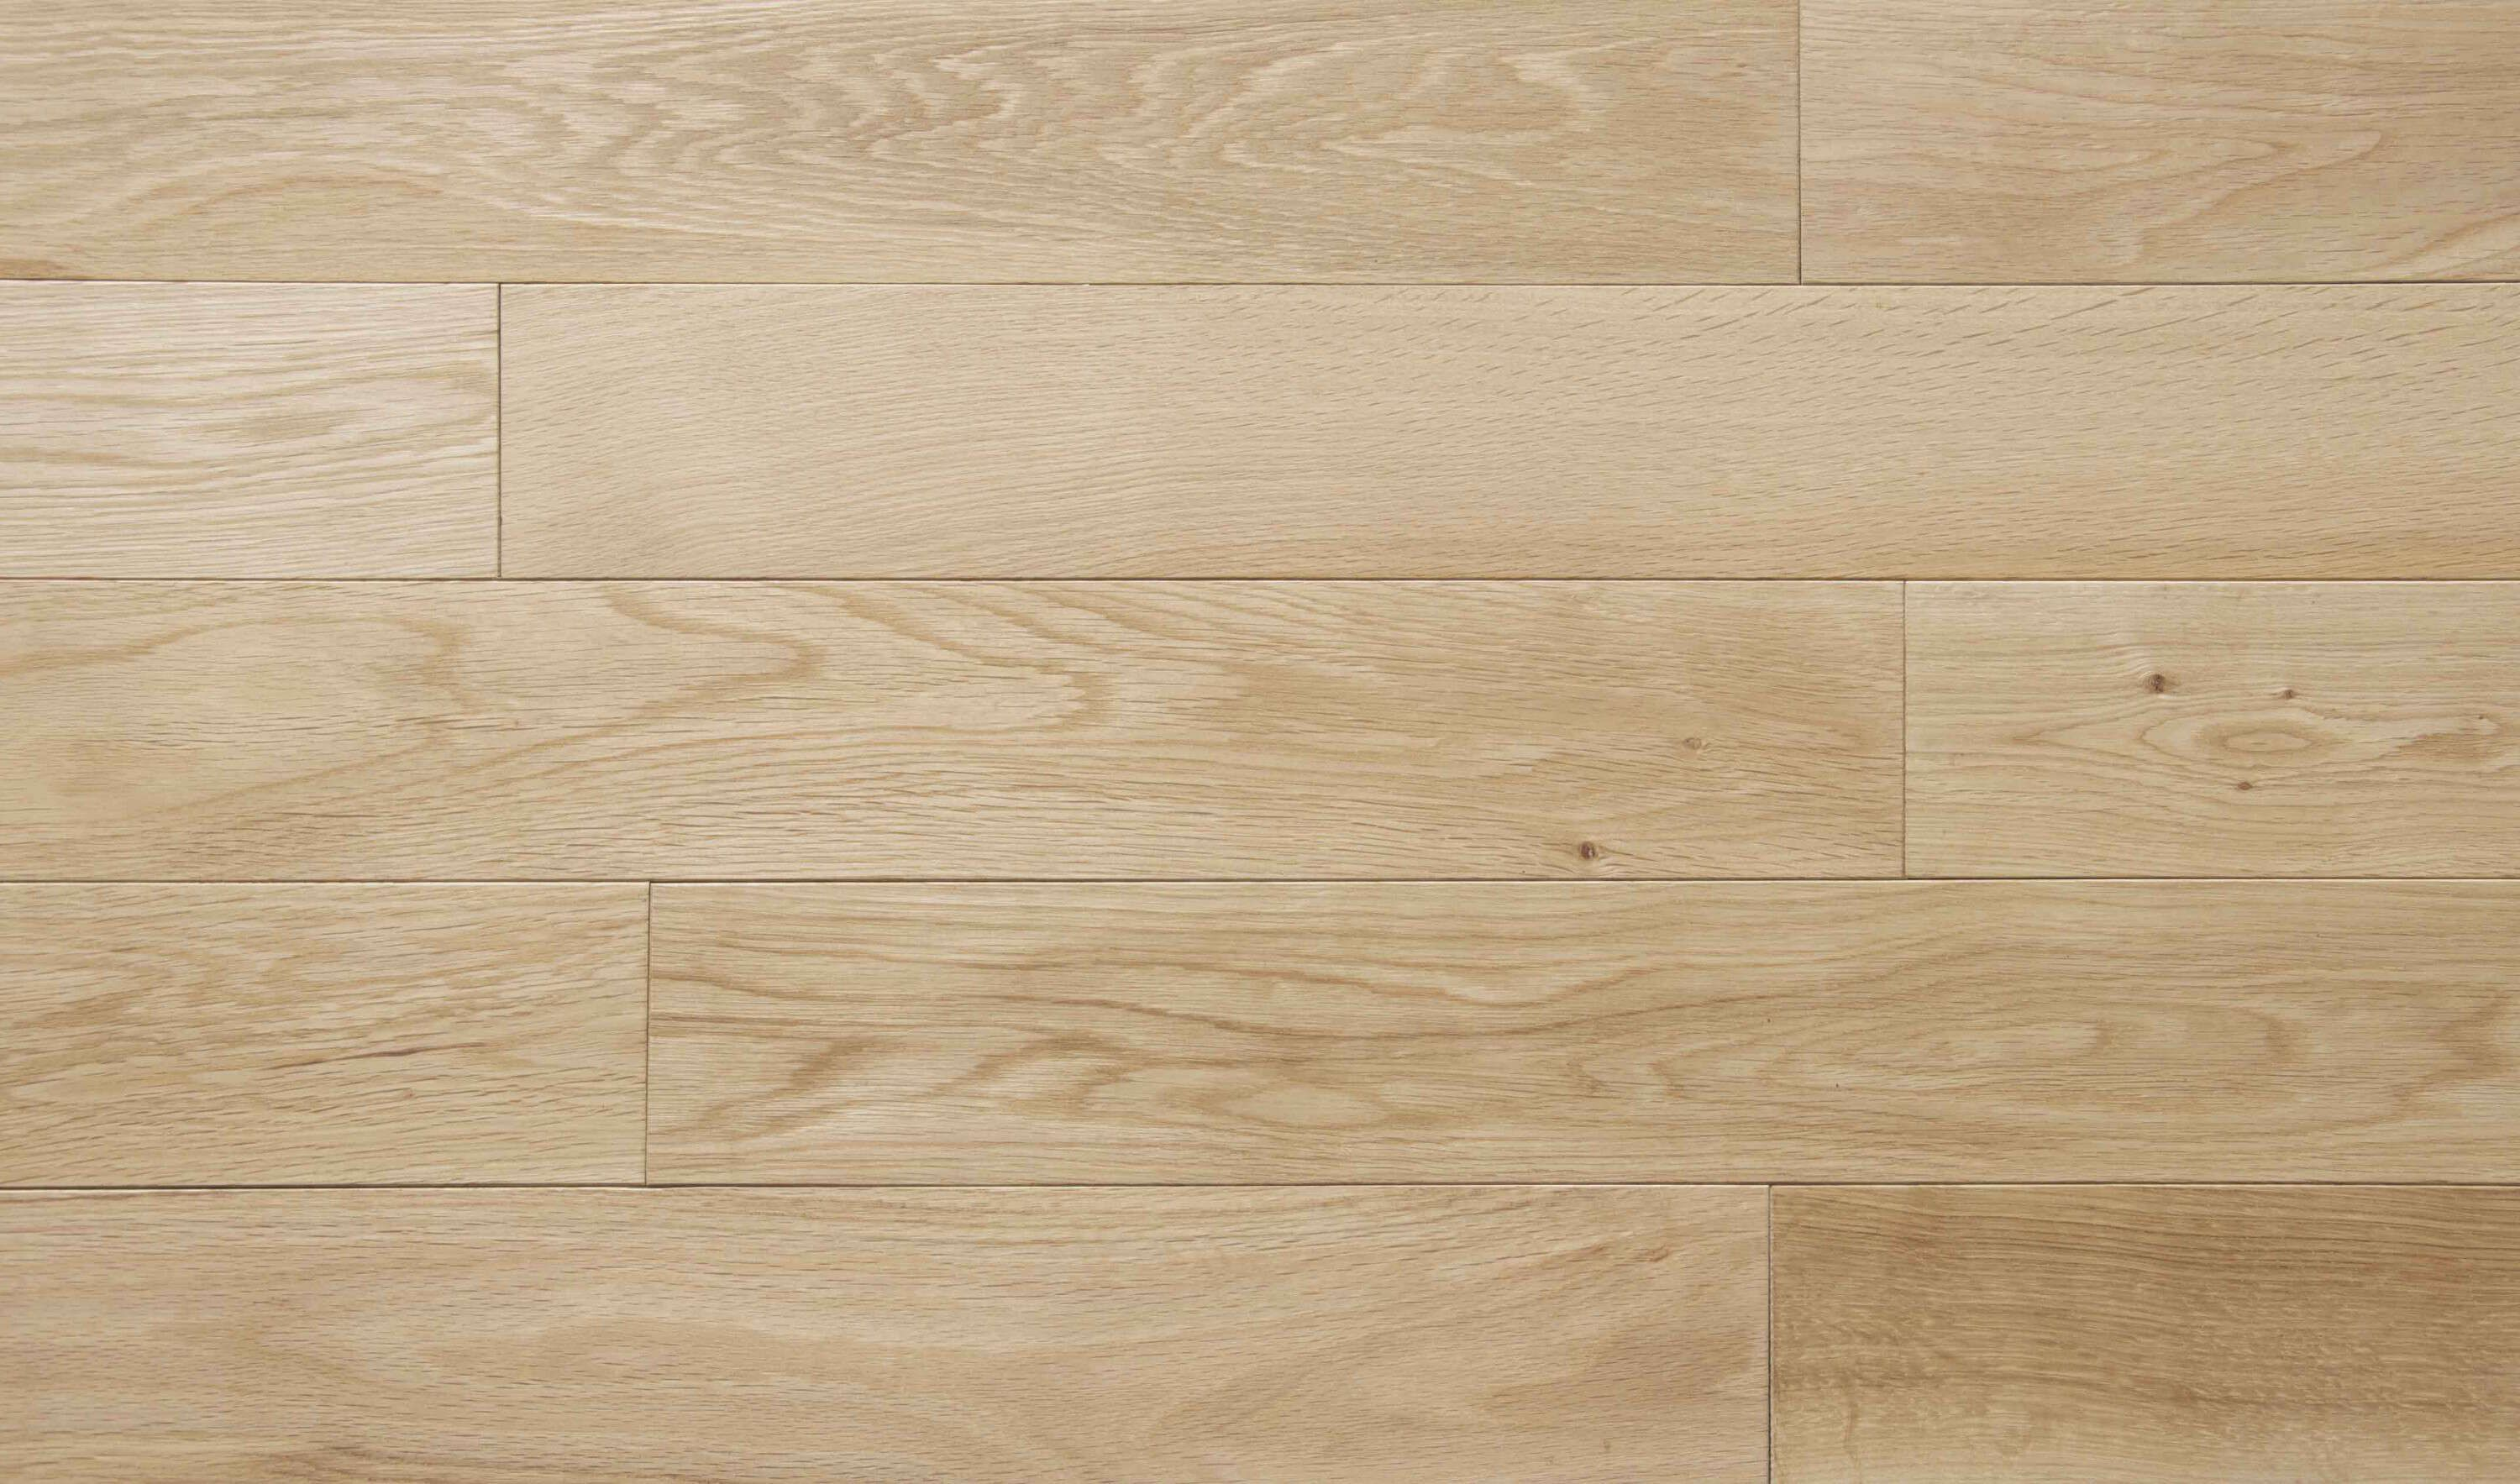 Parqet Oakwood Parquet Chêne Massif Wood And Limanate Floors